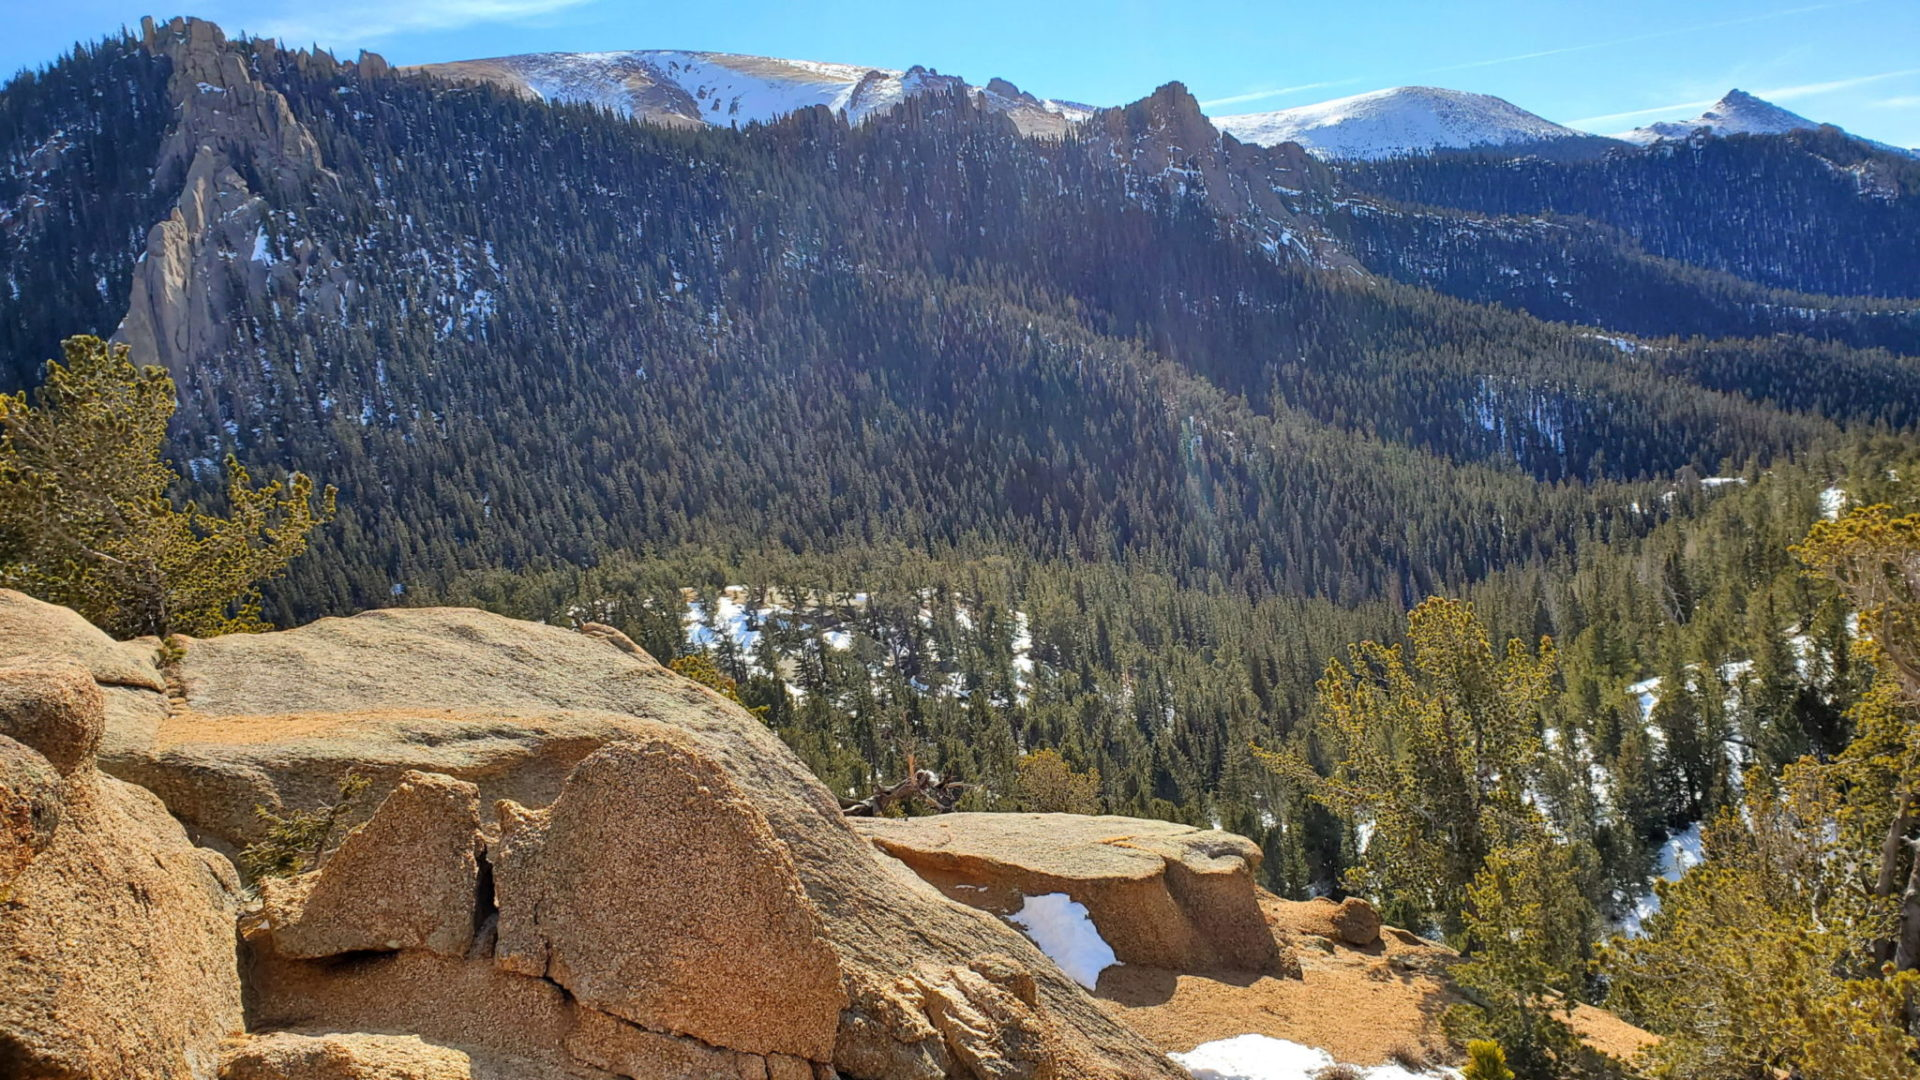 Pikes Peak area to the southeast